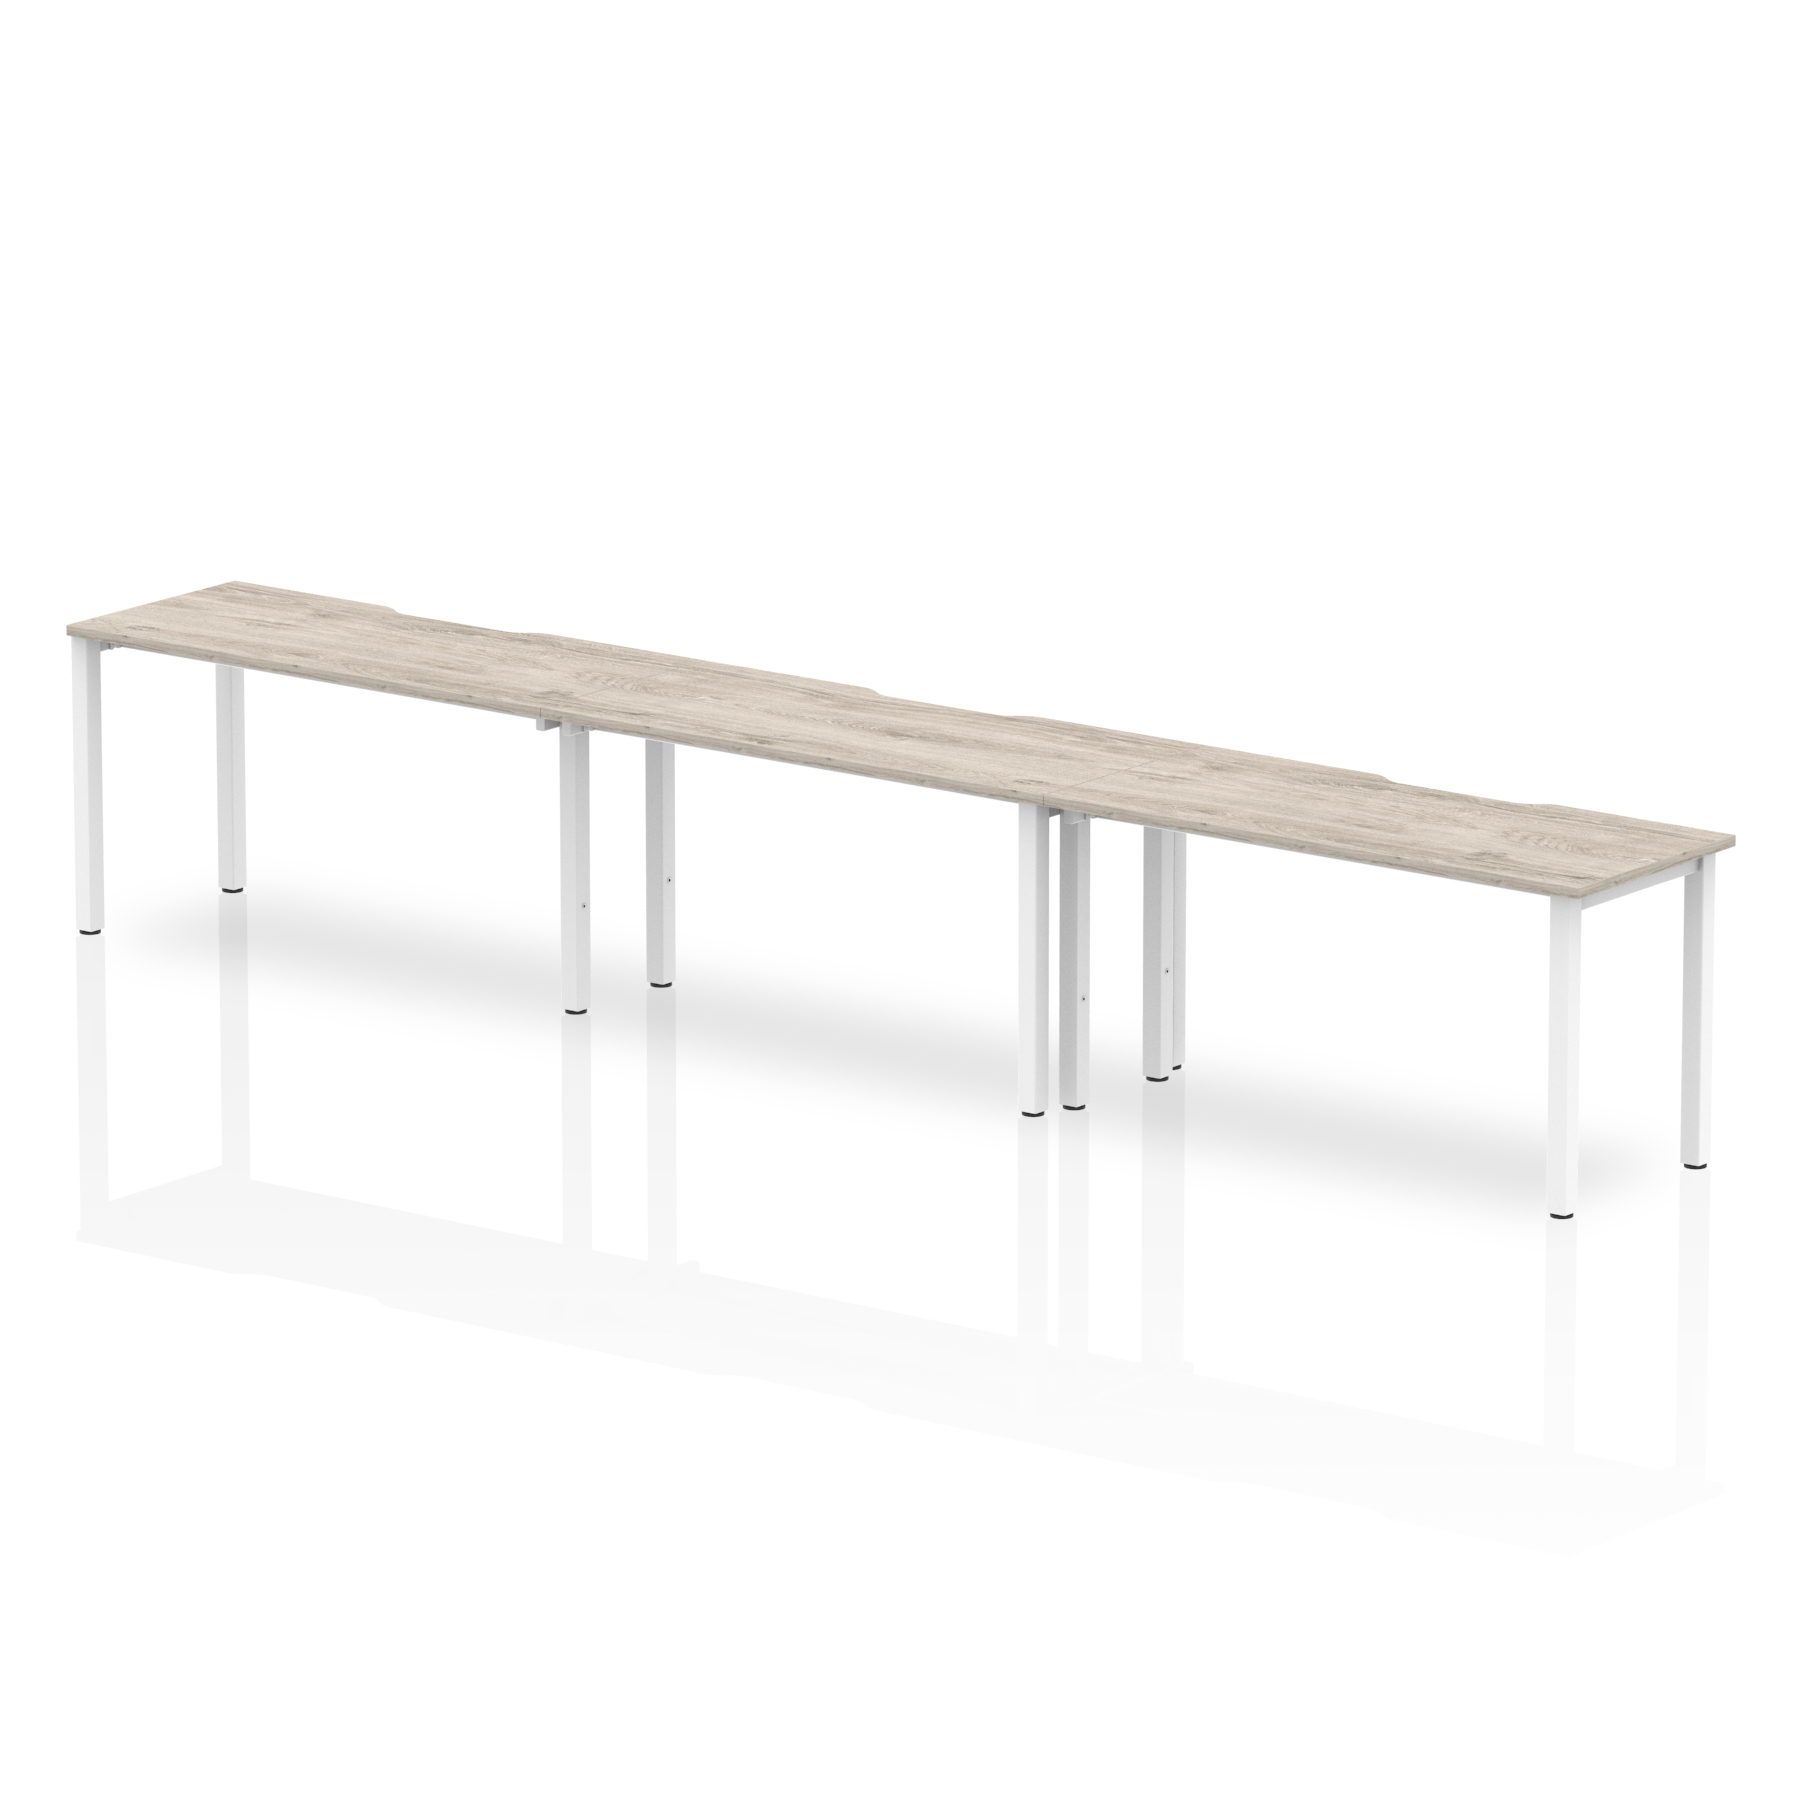 Desks Trexus Bench Desk 3 Person Side to Side Configuration White Leg 4200x800mm Grey Oak Ref BE774